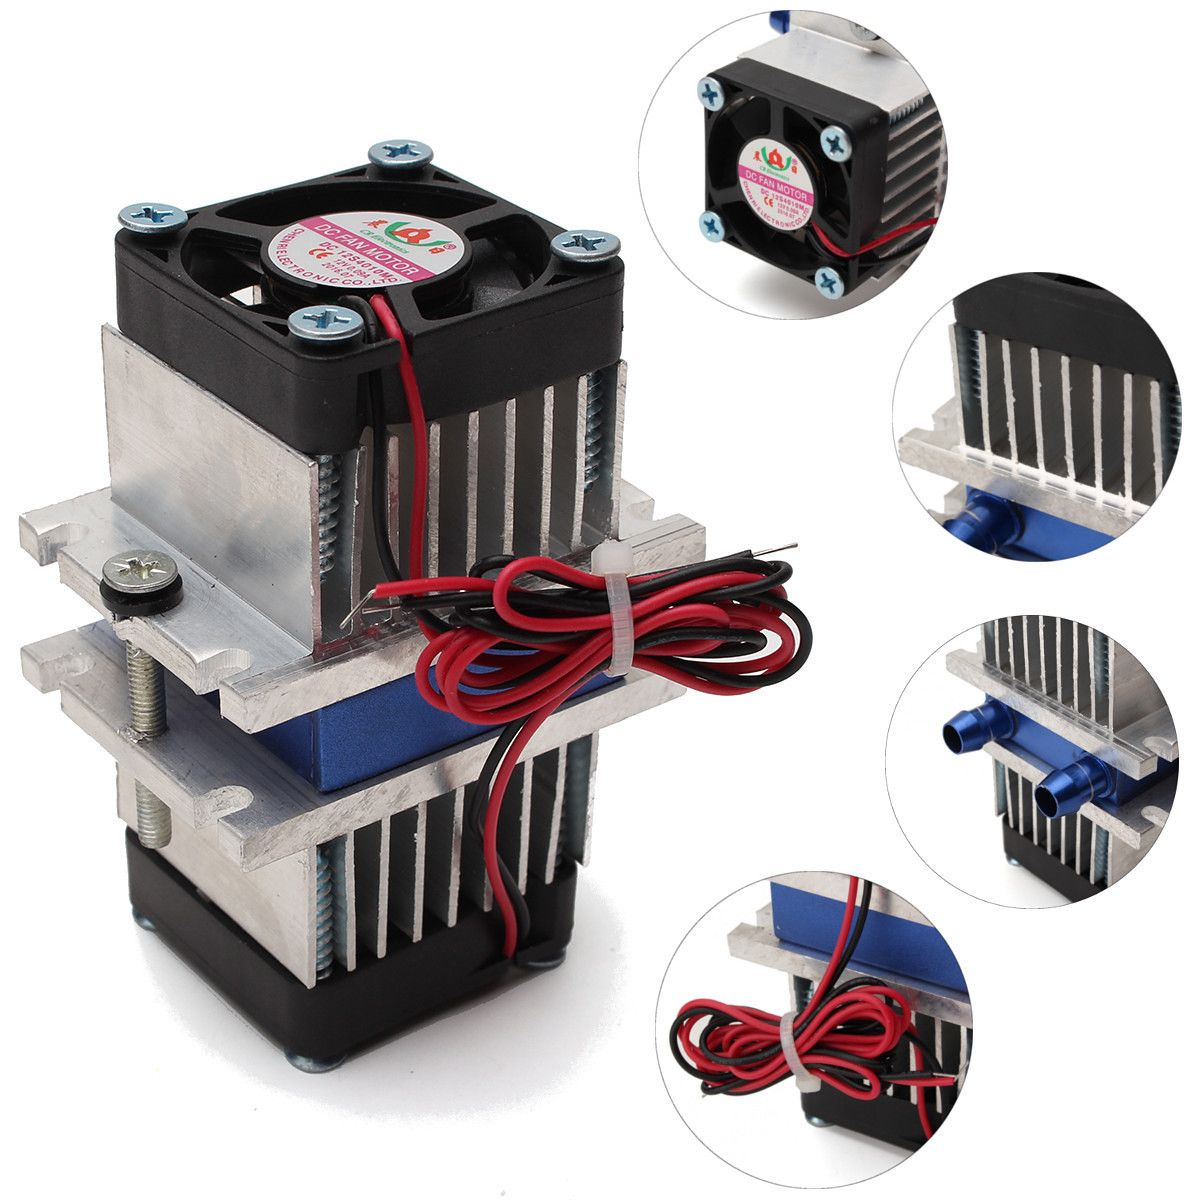 Diy thermoelectric peltier refrigeration cooling system